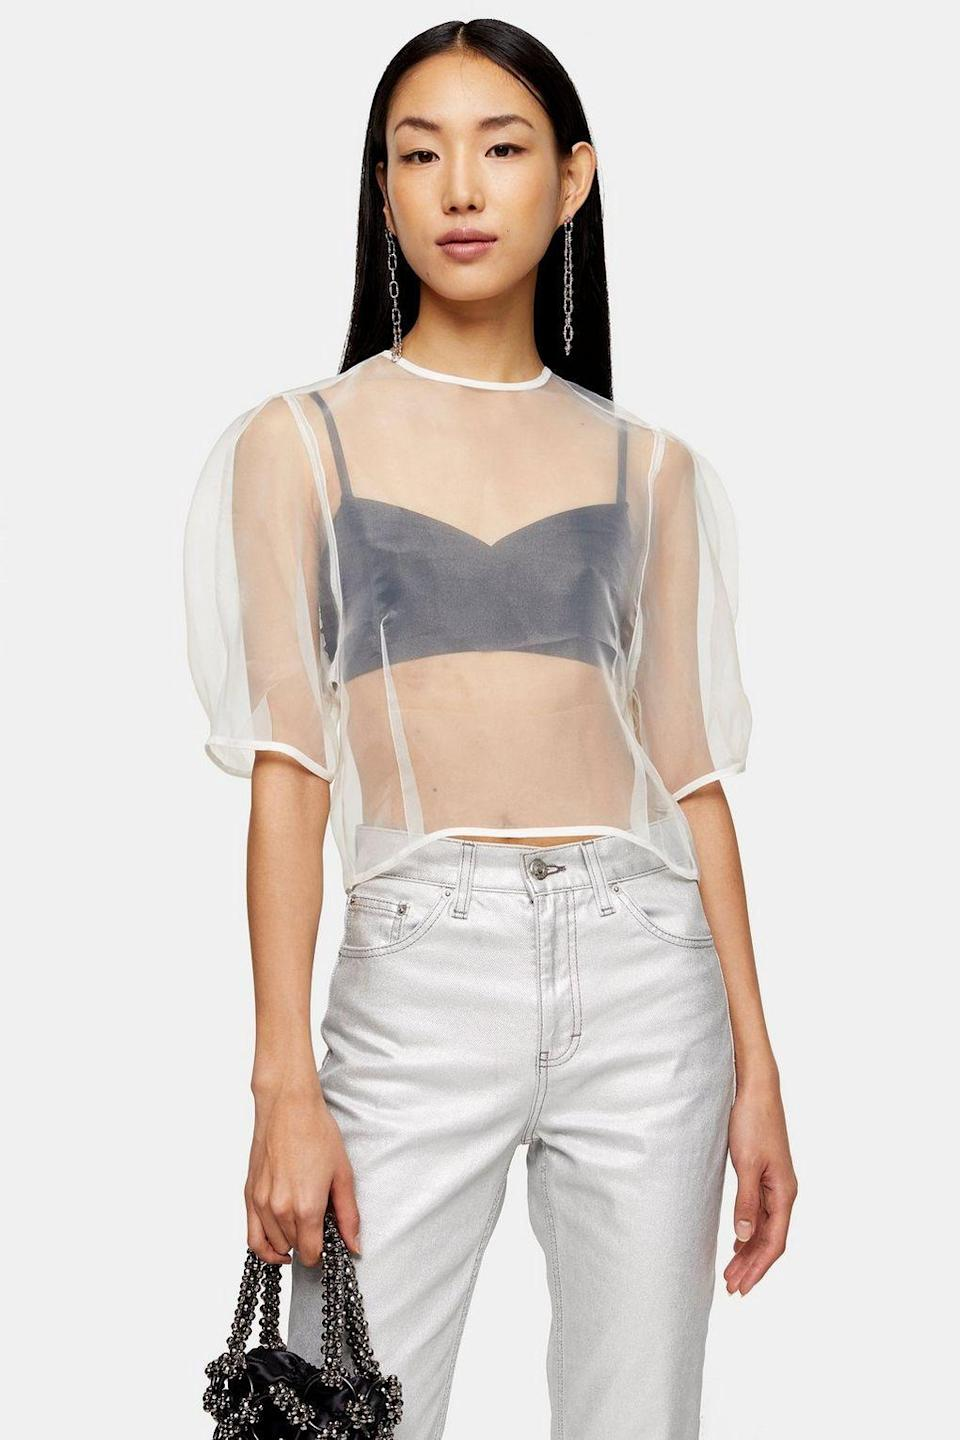 "<p><strong>Topshop</strong></p><p>topshop.com</p><p><strong>$11.00</strong></p><p><a href=""https://go.redirectingat.com?id=74968X1596630&url=https%3A%2F%2Fus.topshop.com%2Fen%2Ftsus%2Fproduct%2Fivory-organza-cocoon-top-9447539&sref=https%3A%2F%2Fwww.cosmopolitan.com%2Fstyle-beauty%2Ffashion%2Fg34992845%2F2021-fashion-trends%2F"" rel=""nofollow noopener"" target=""_blank"" data-ylk=""slk:Shop Now"" class=""link rapid-noclick-resp"">Shop Now</a></p><p>Show off your cutest bralette with an organza blouse like this one from Topshop. </p>"